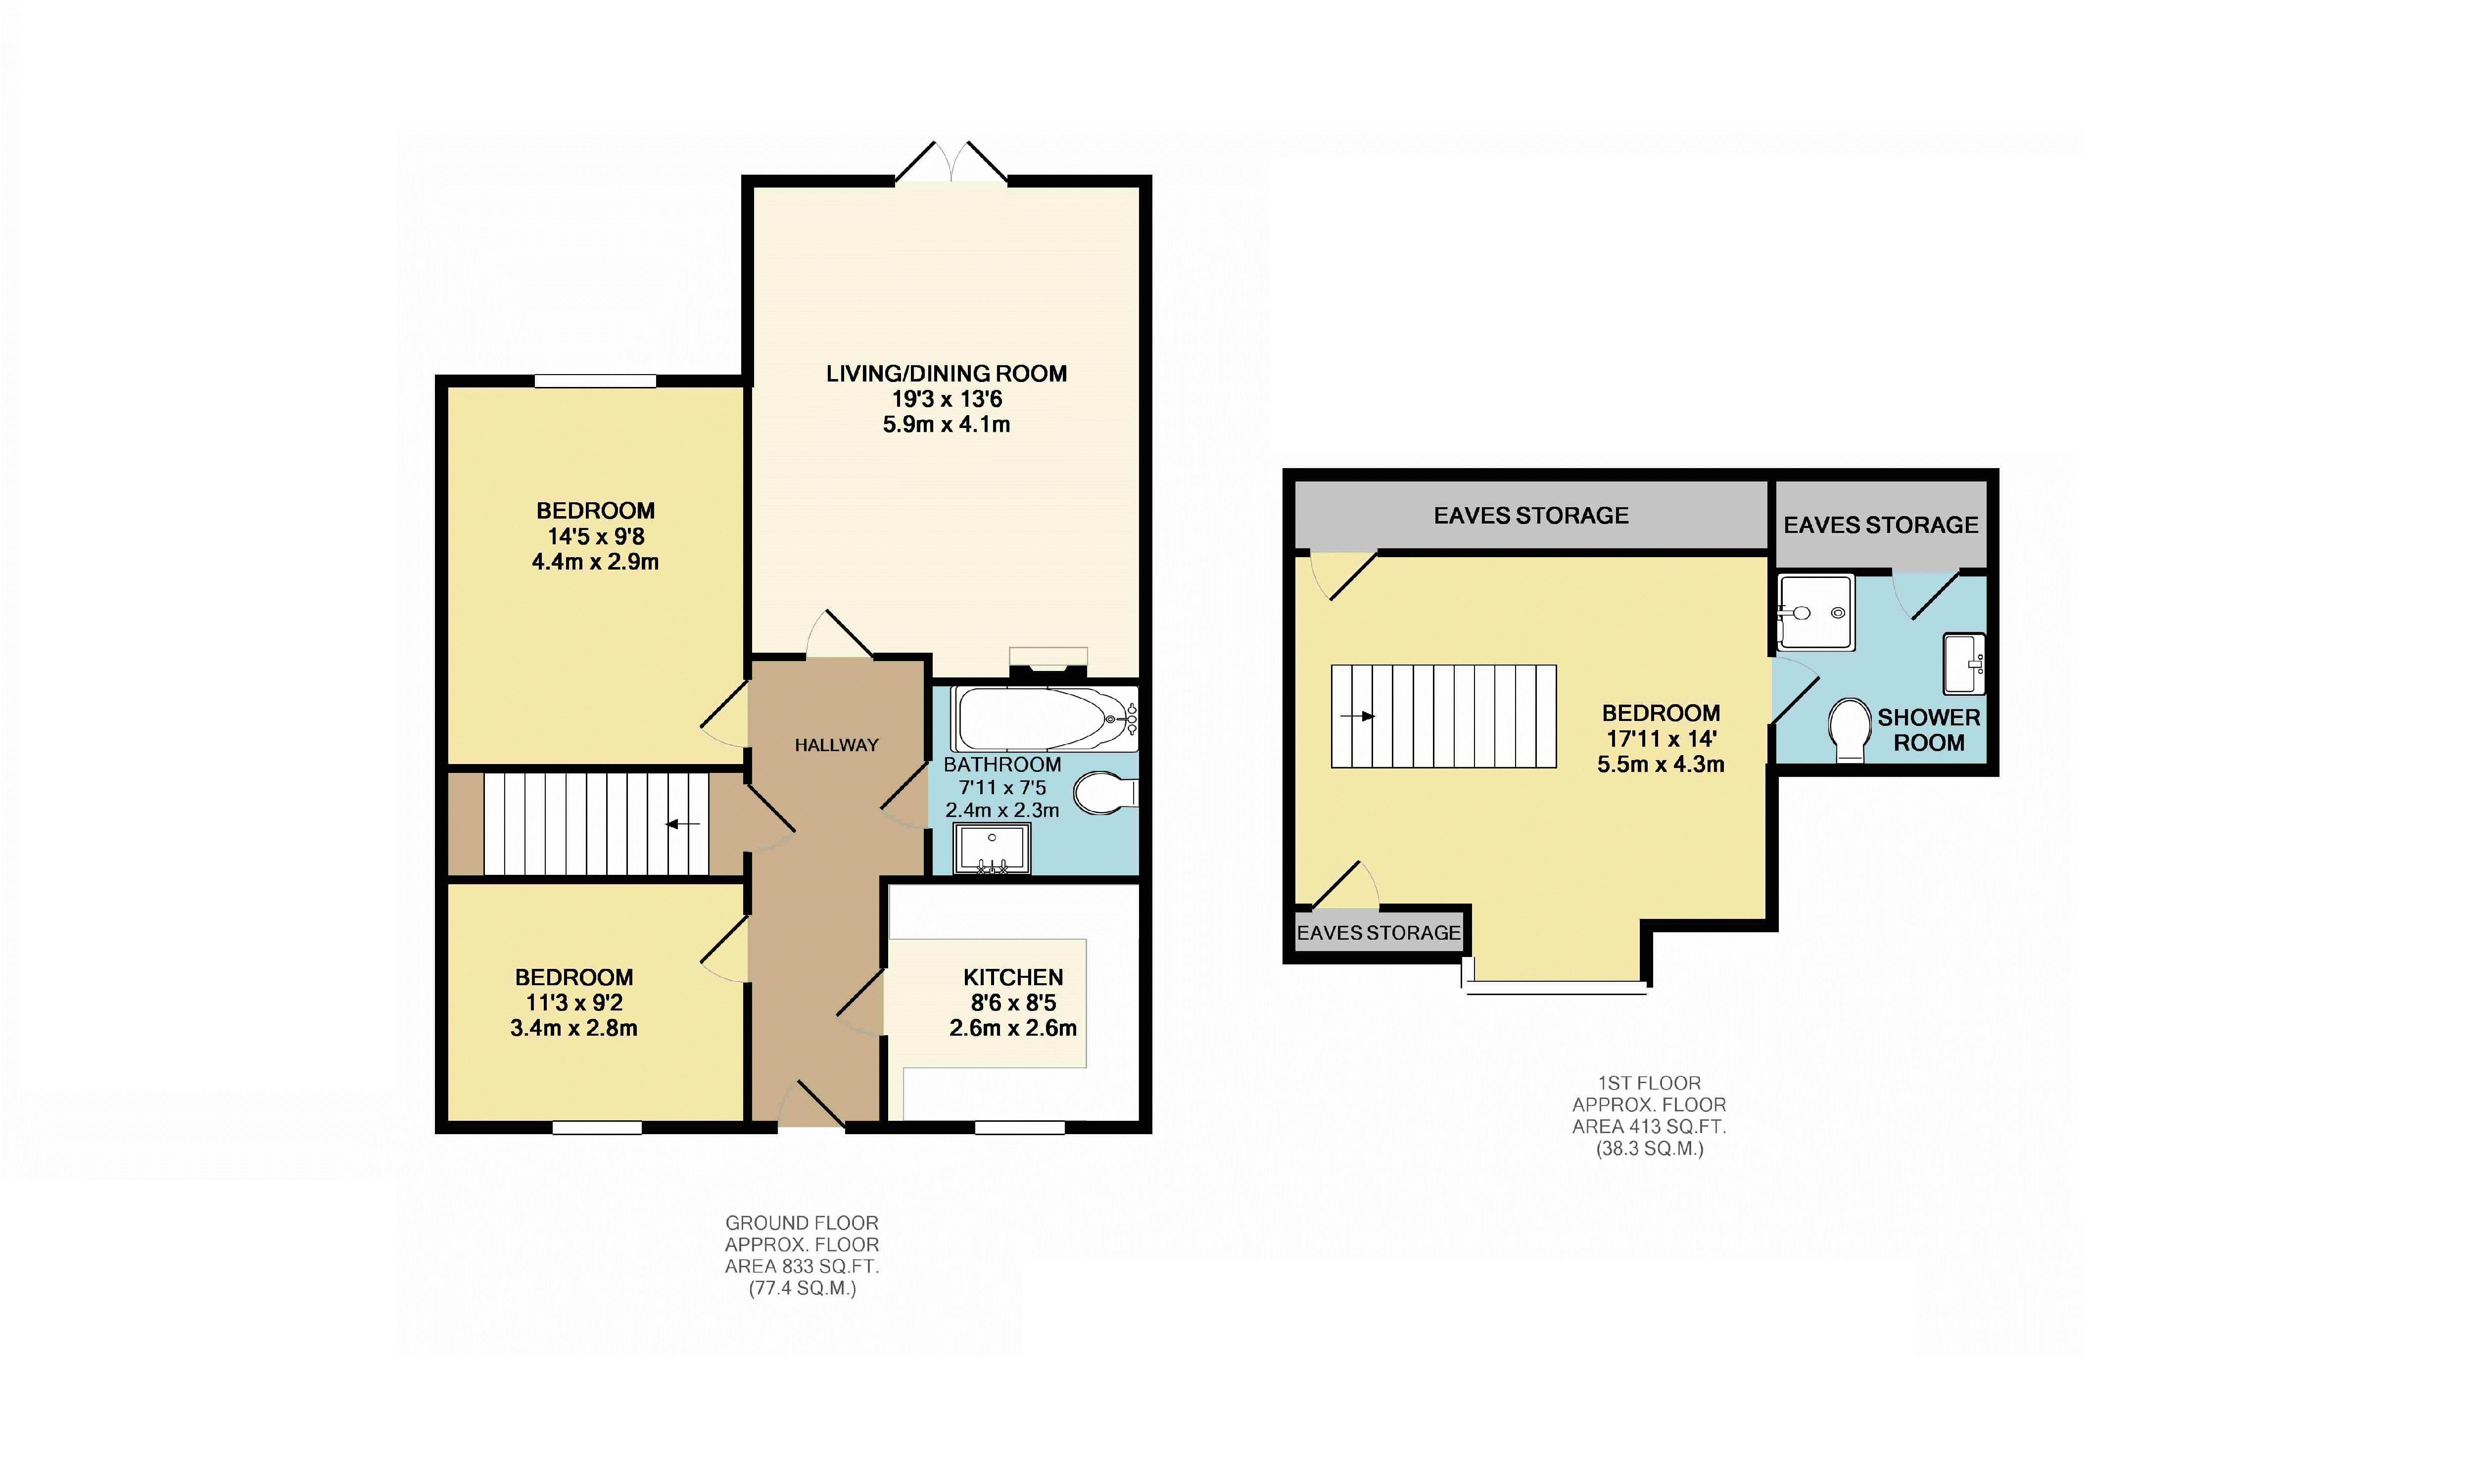 3 bedroom bungalow for sale in luton for How much is a bathroom worth on an appraisal